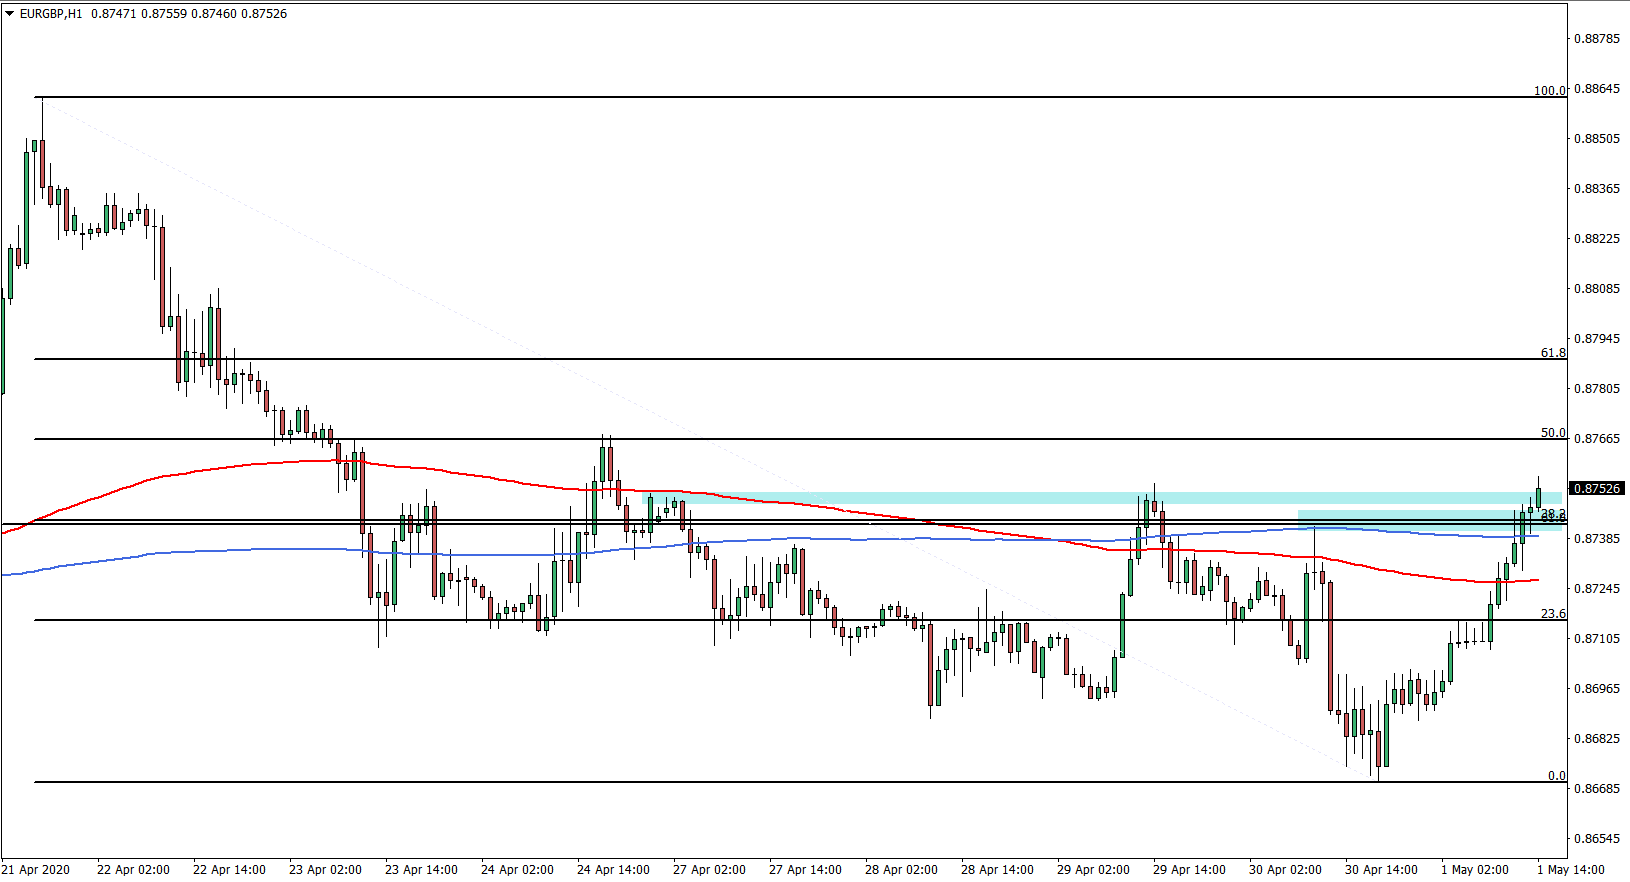 EURGBP 1H Chart May 1st 2020